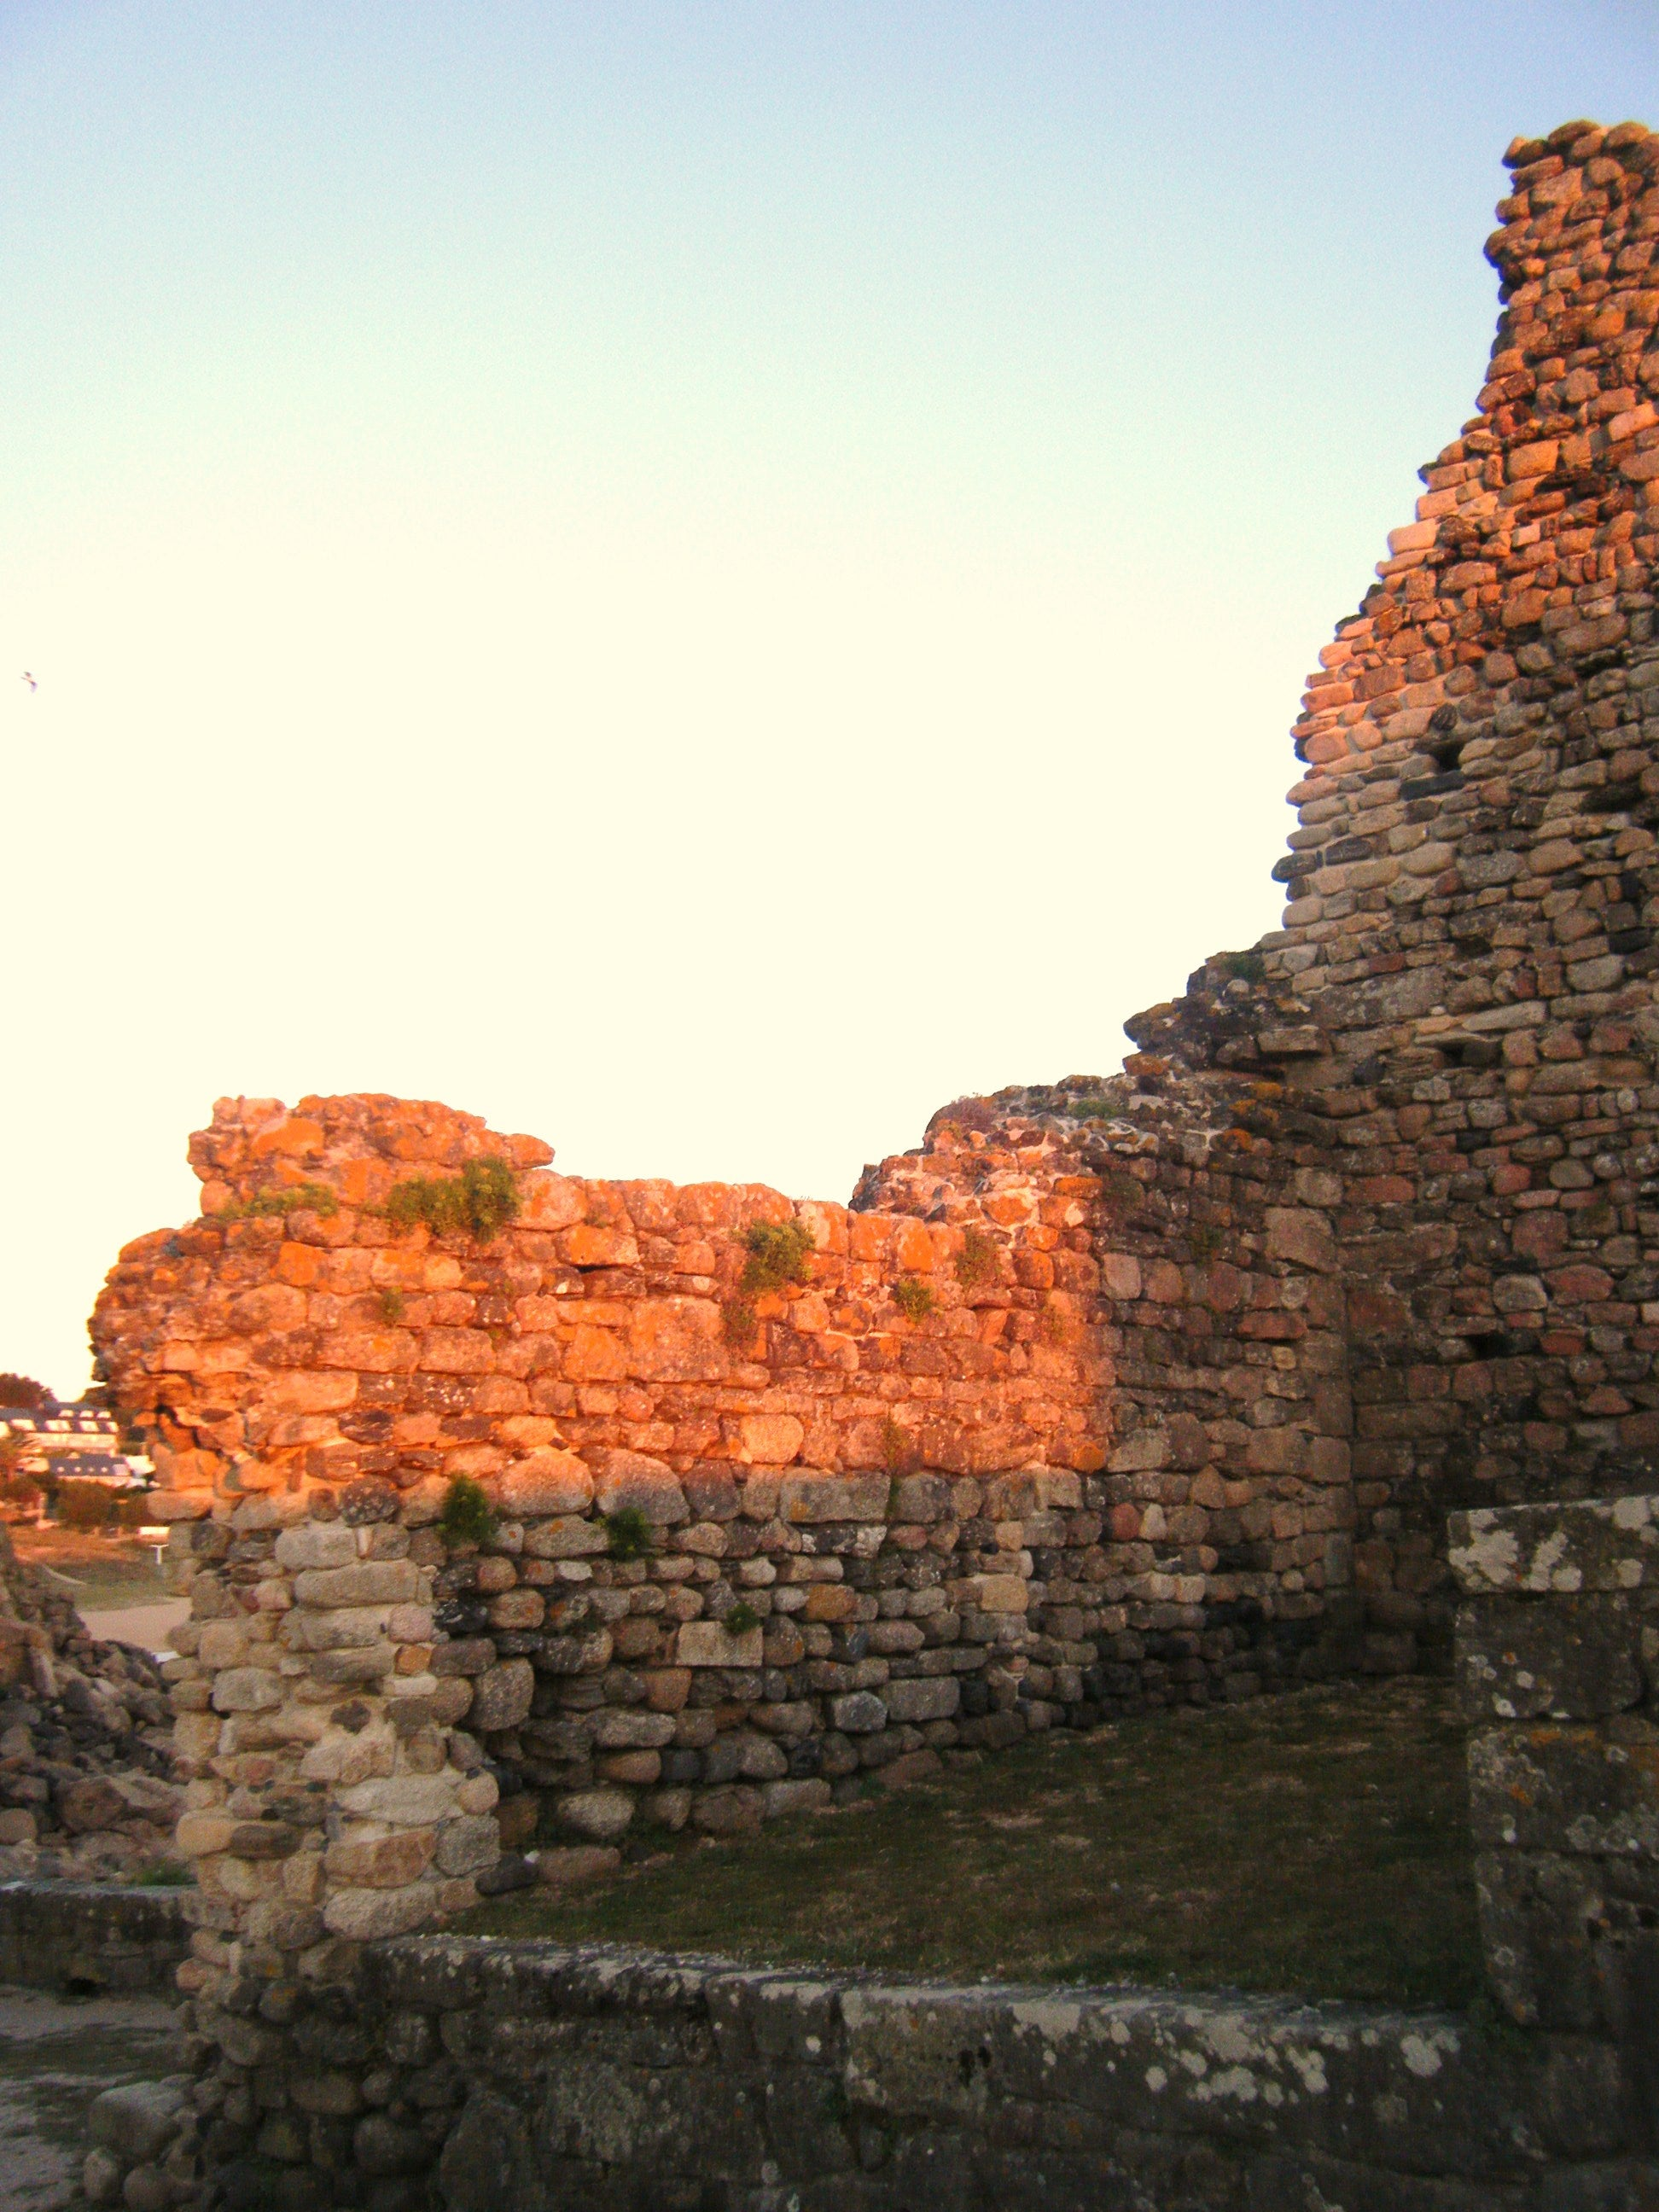 Castro da Lanzada Archaeological Site